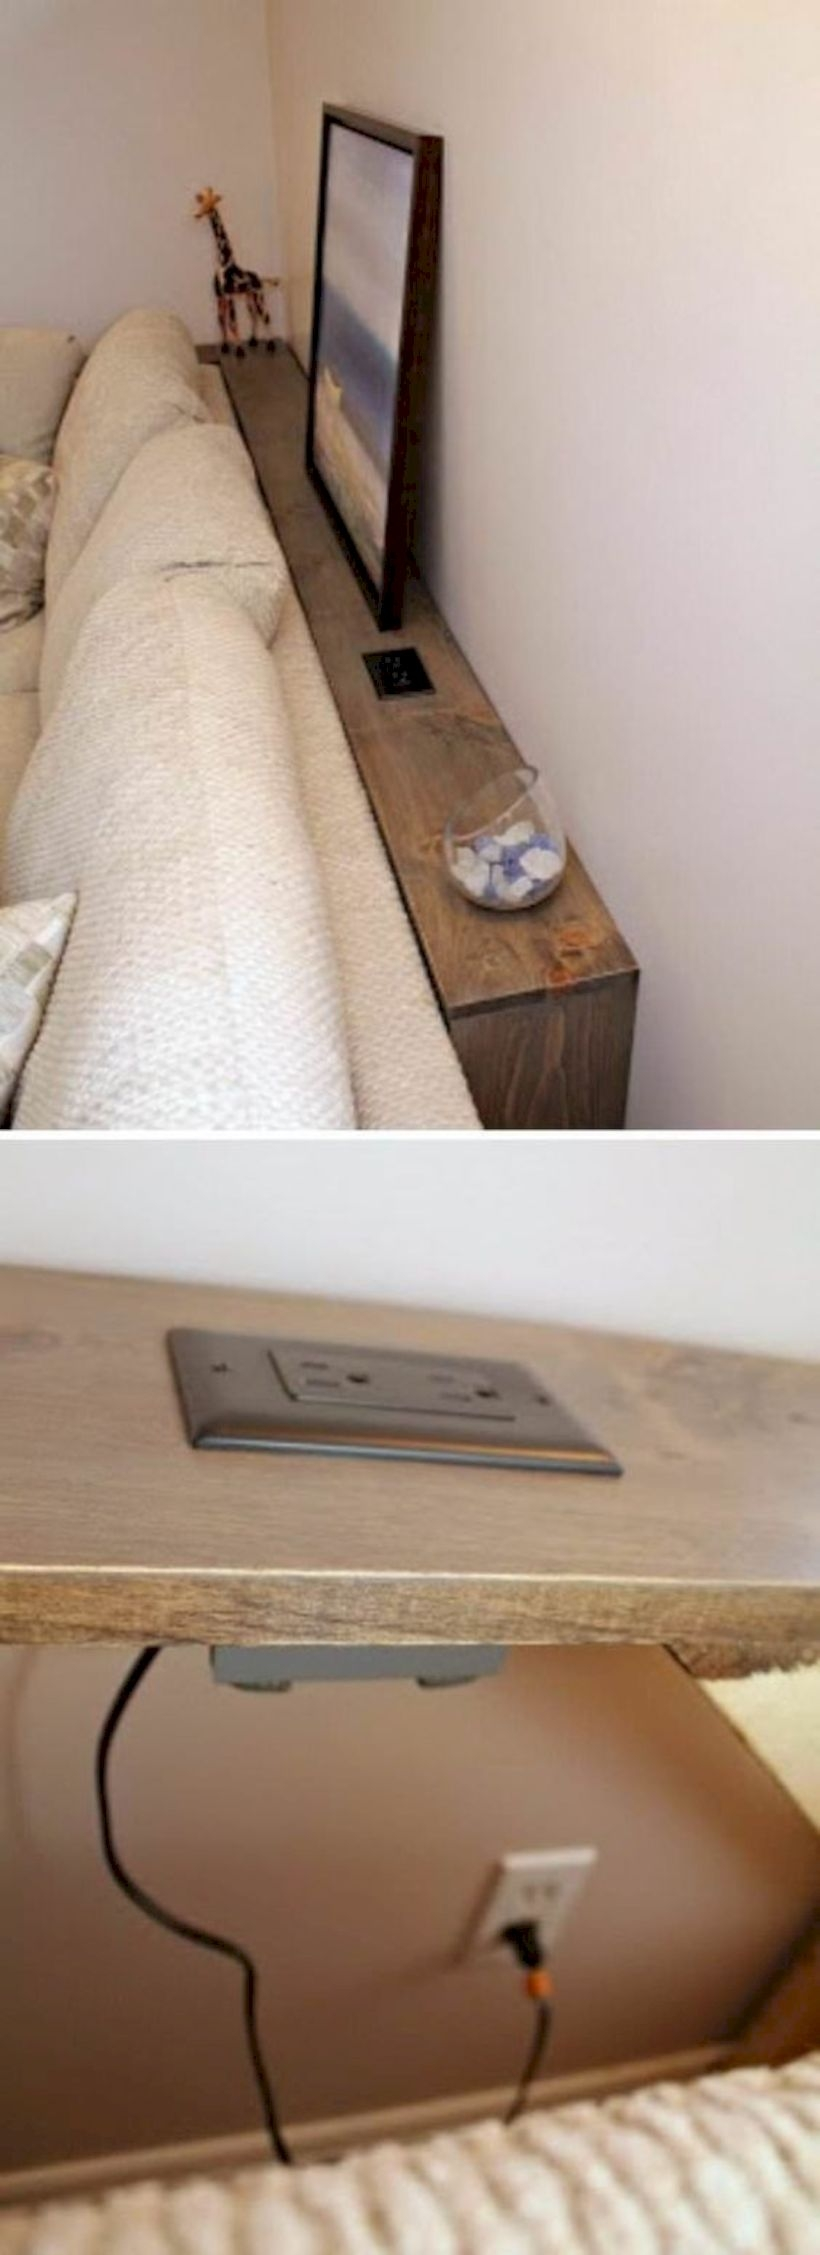 A behind-the-sofa table with an outlet built in